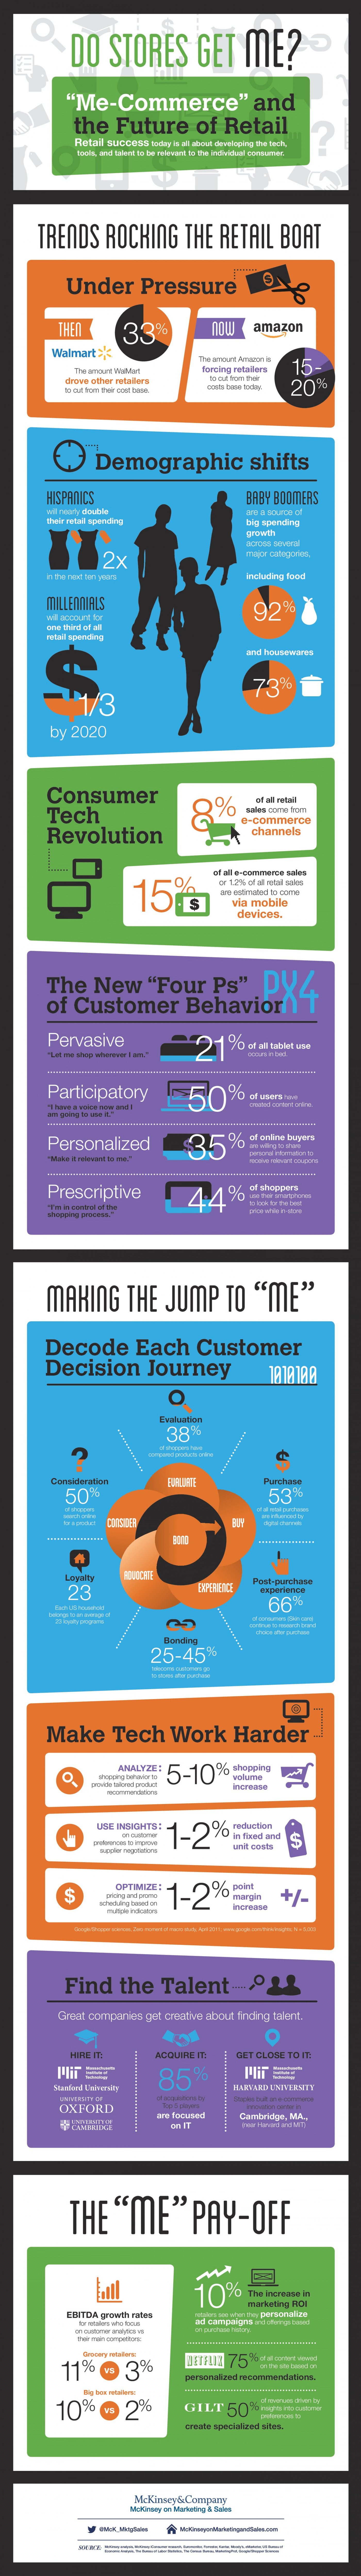 Me-Commerce and the Future of Retail Infographic